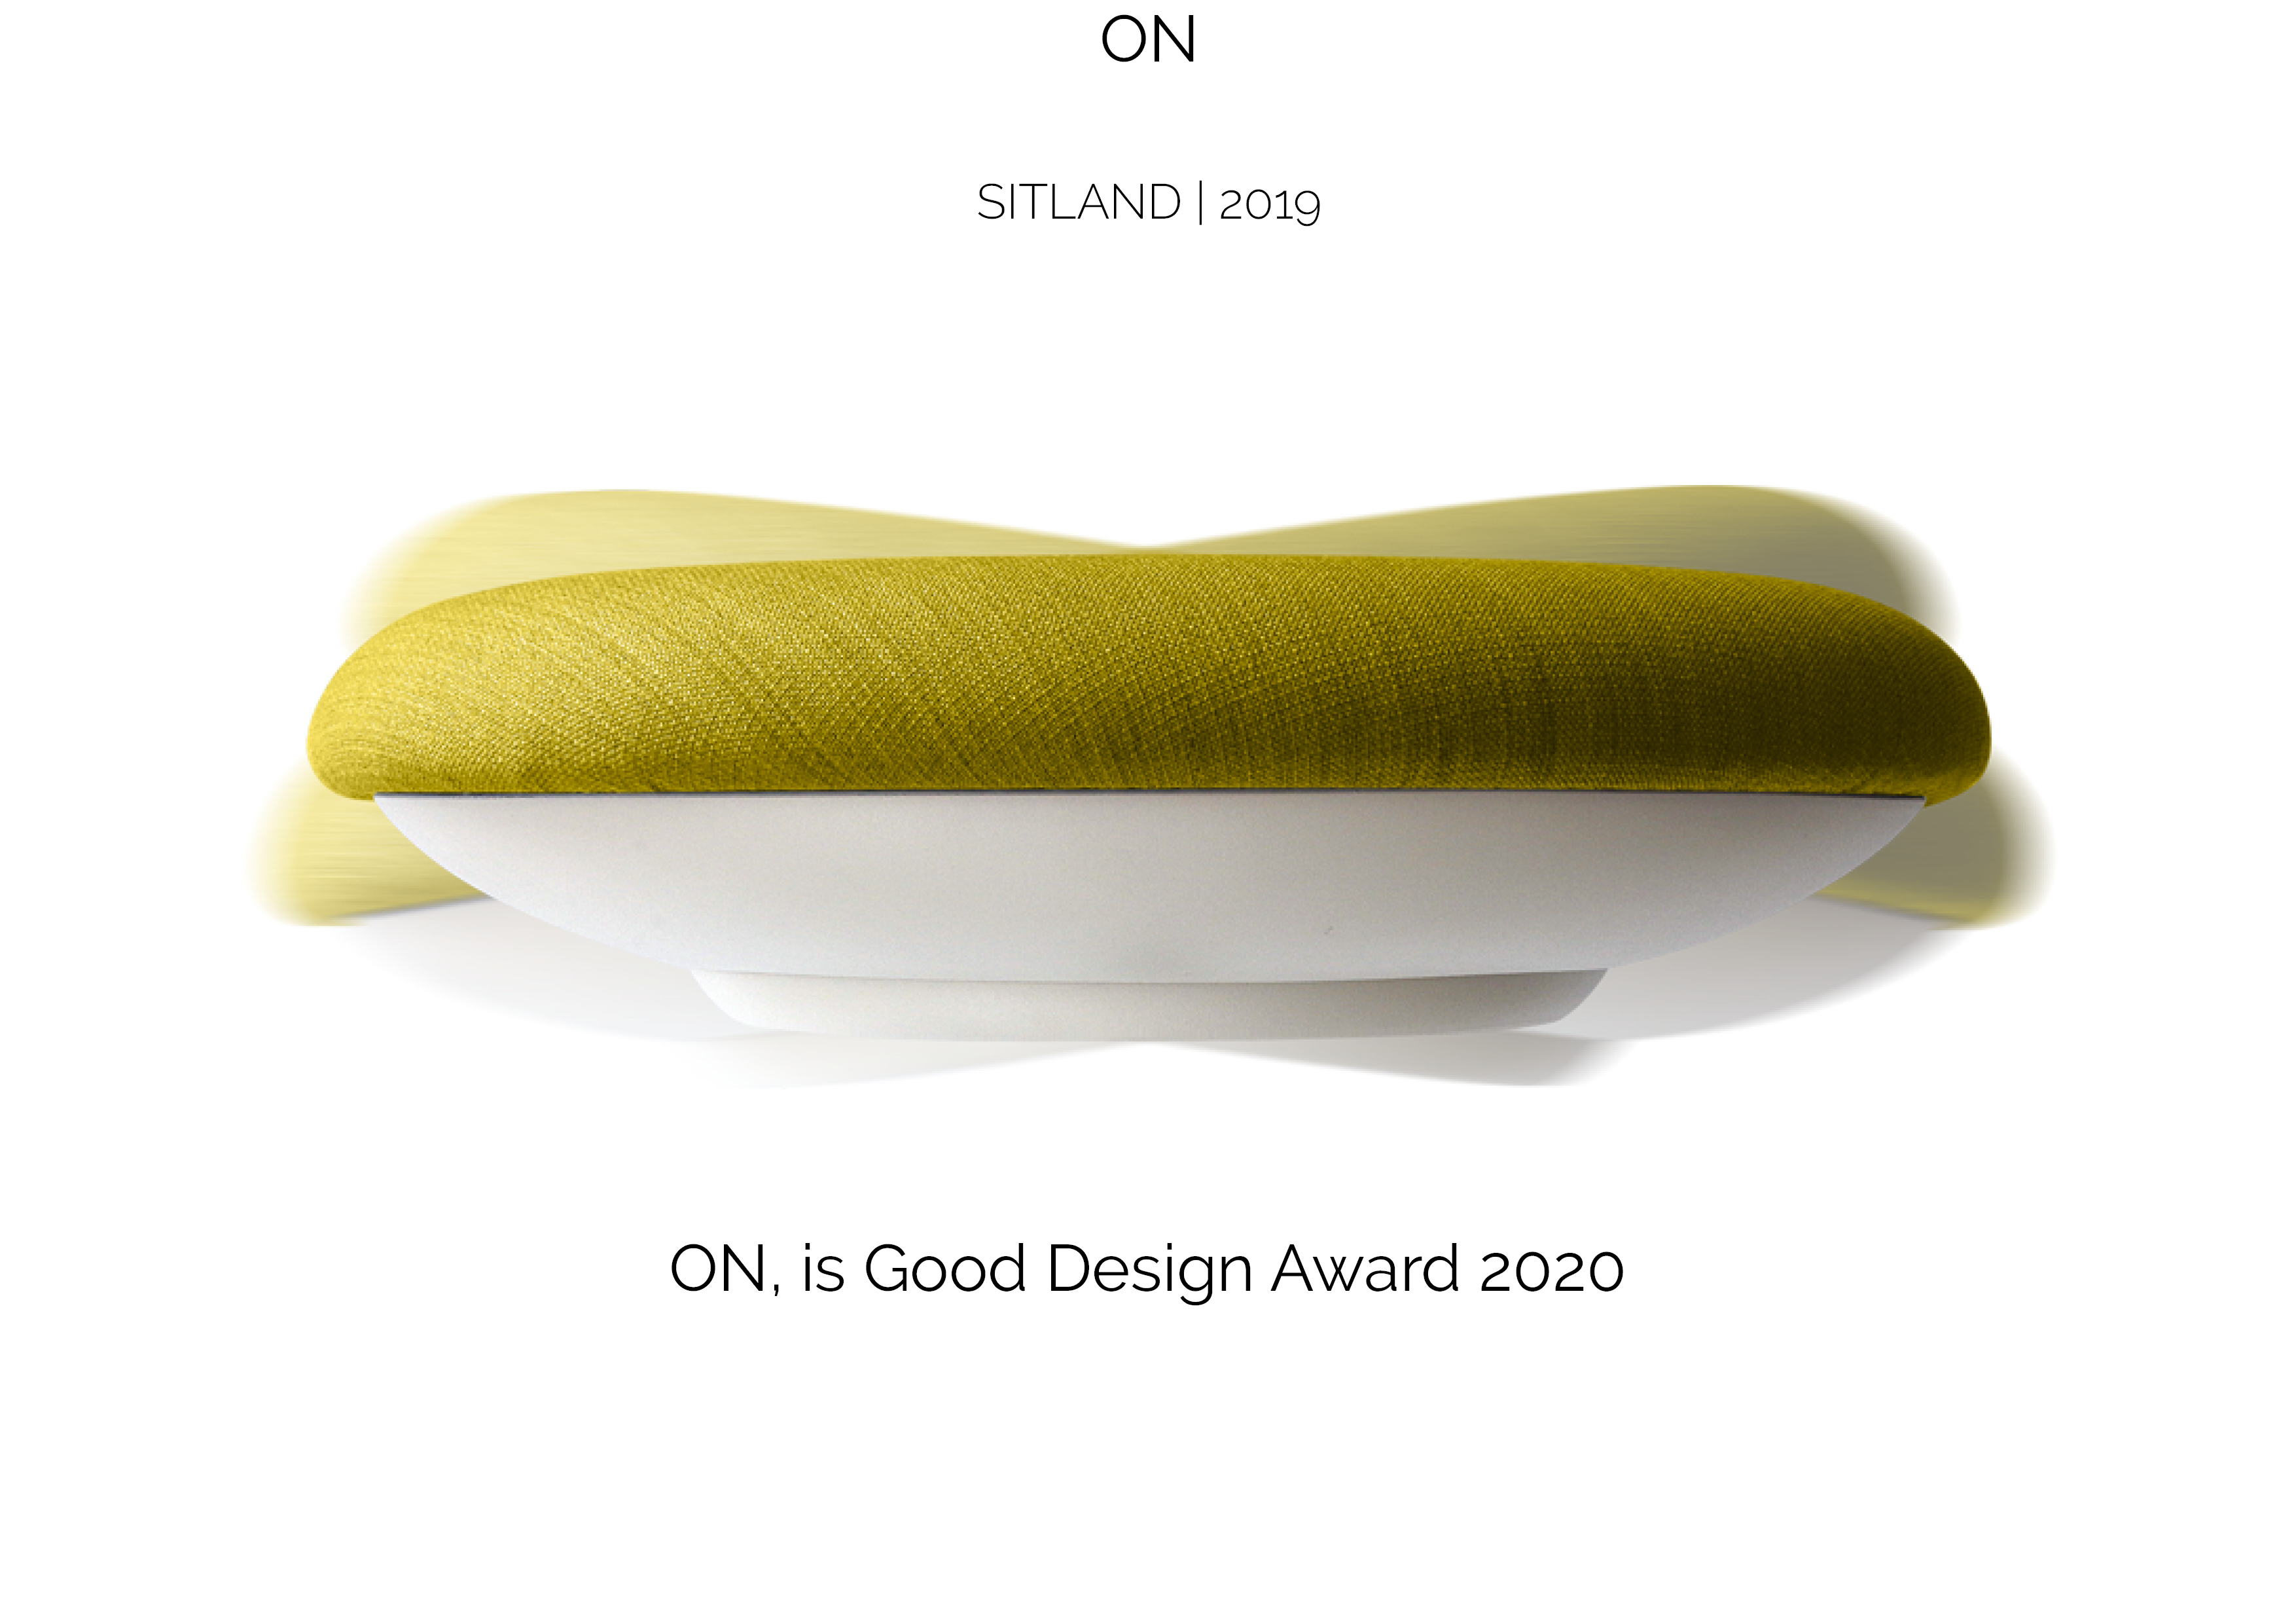 ON GOOD DESIGN 1